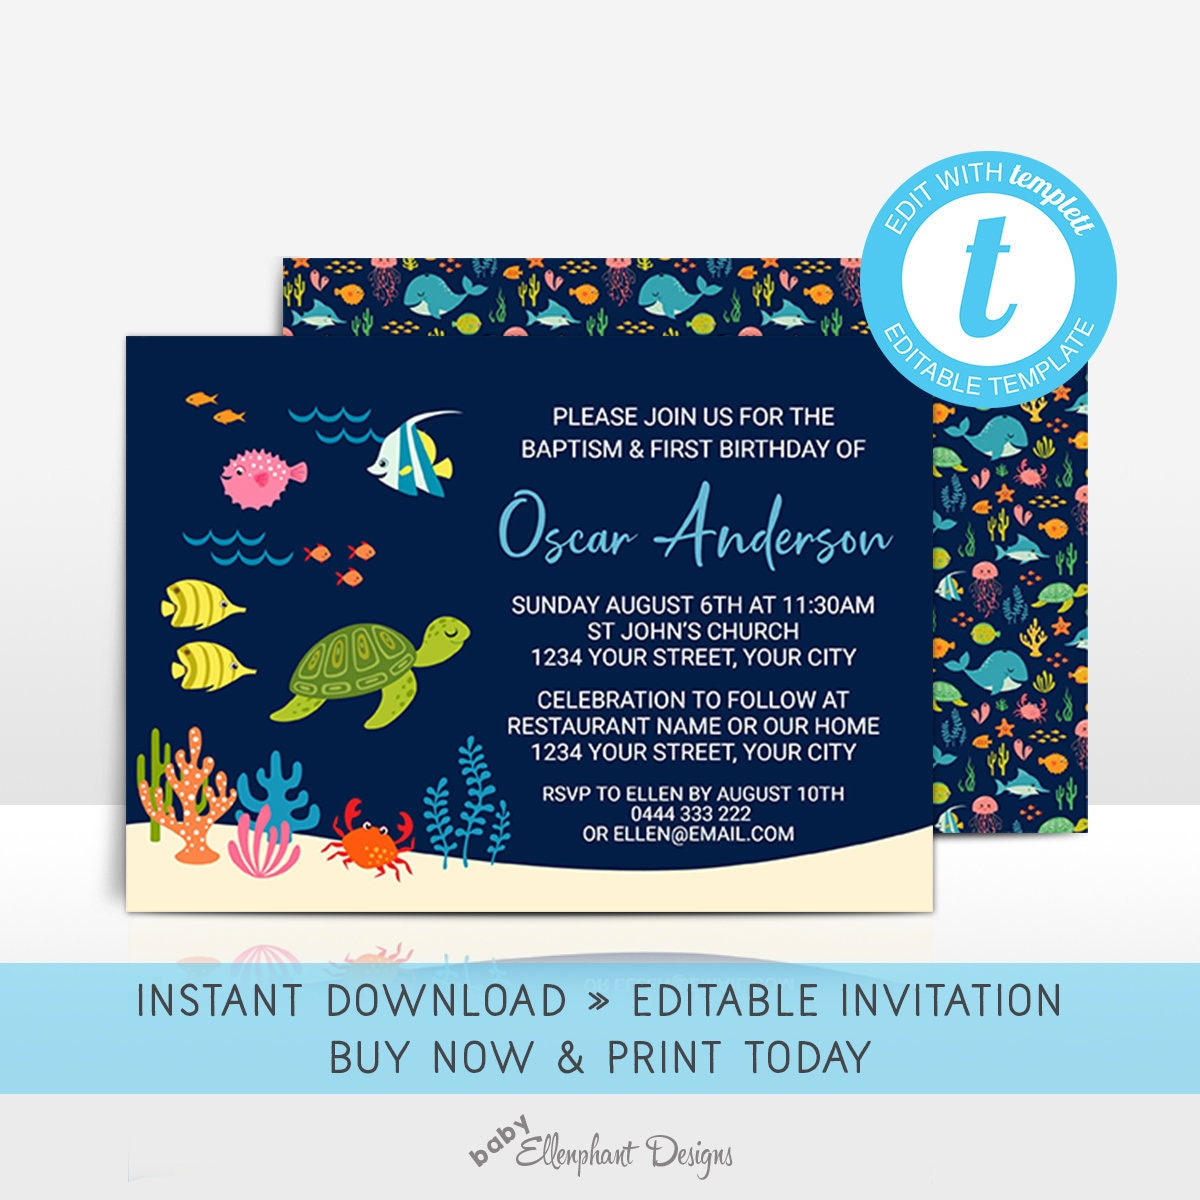 Baptism and First Birthday Invitation Editable Template 1st